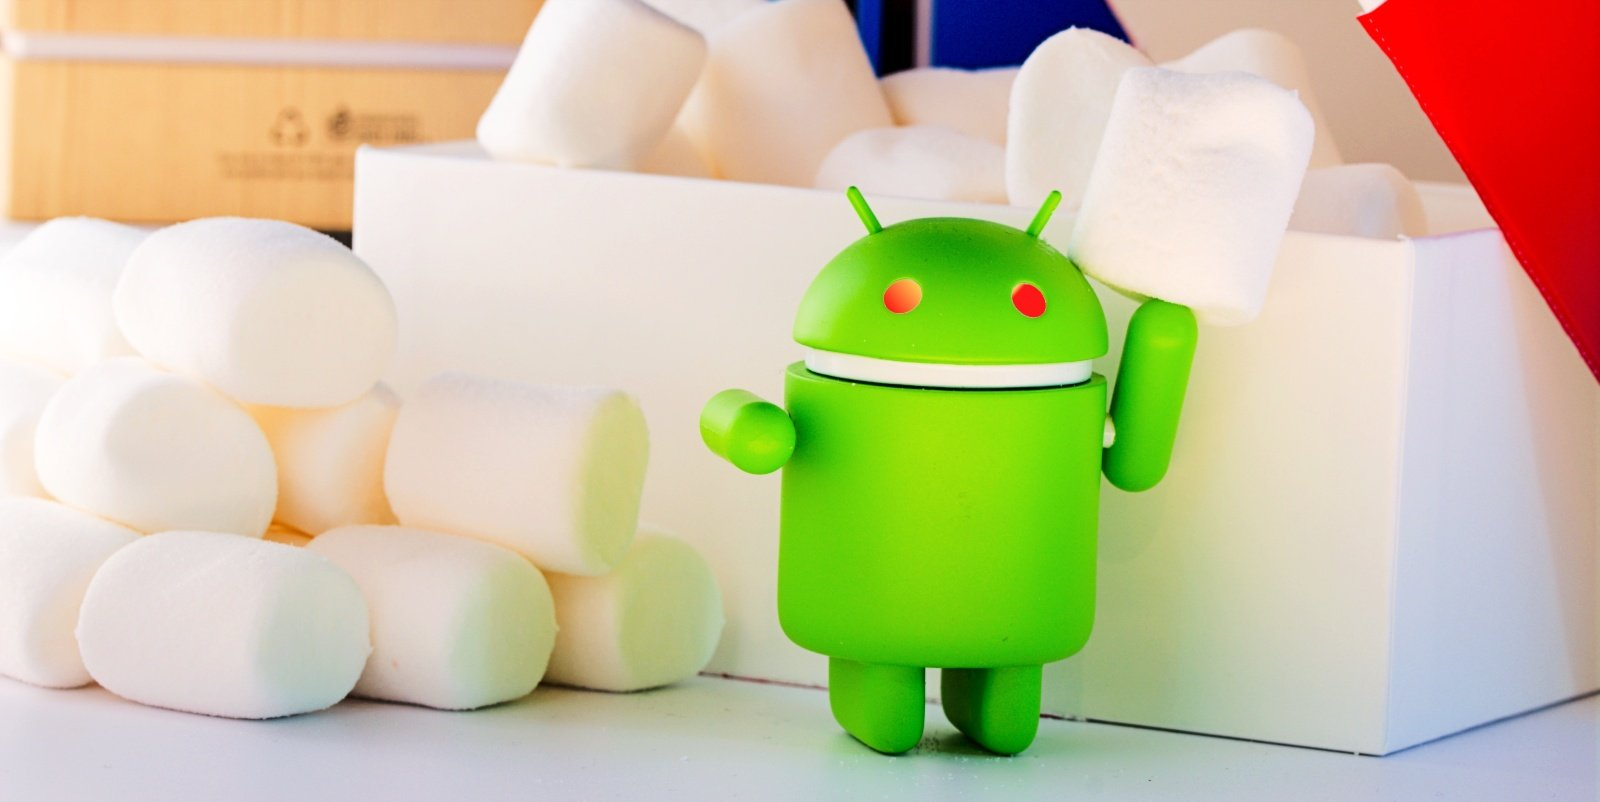 New Android malware spies on you while posing as a System Update